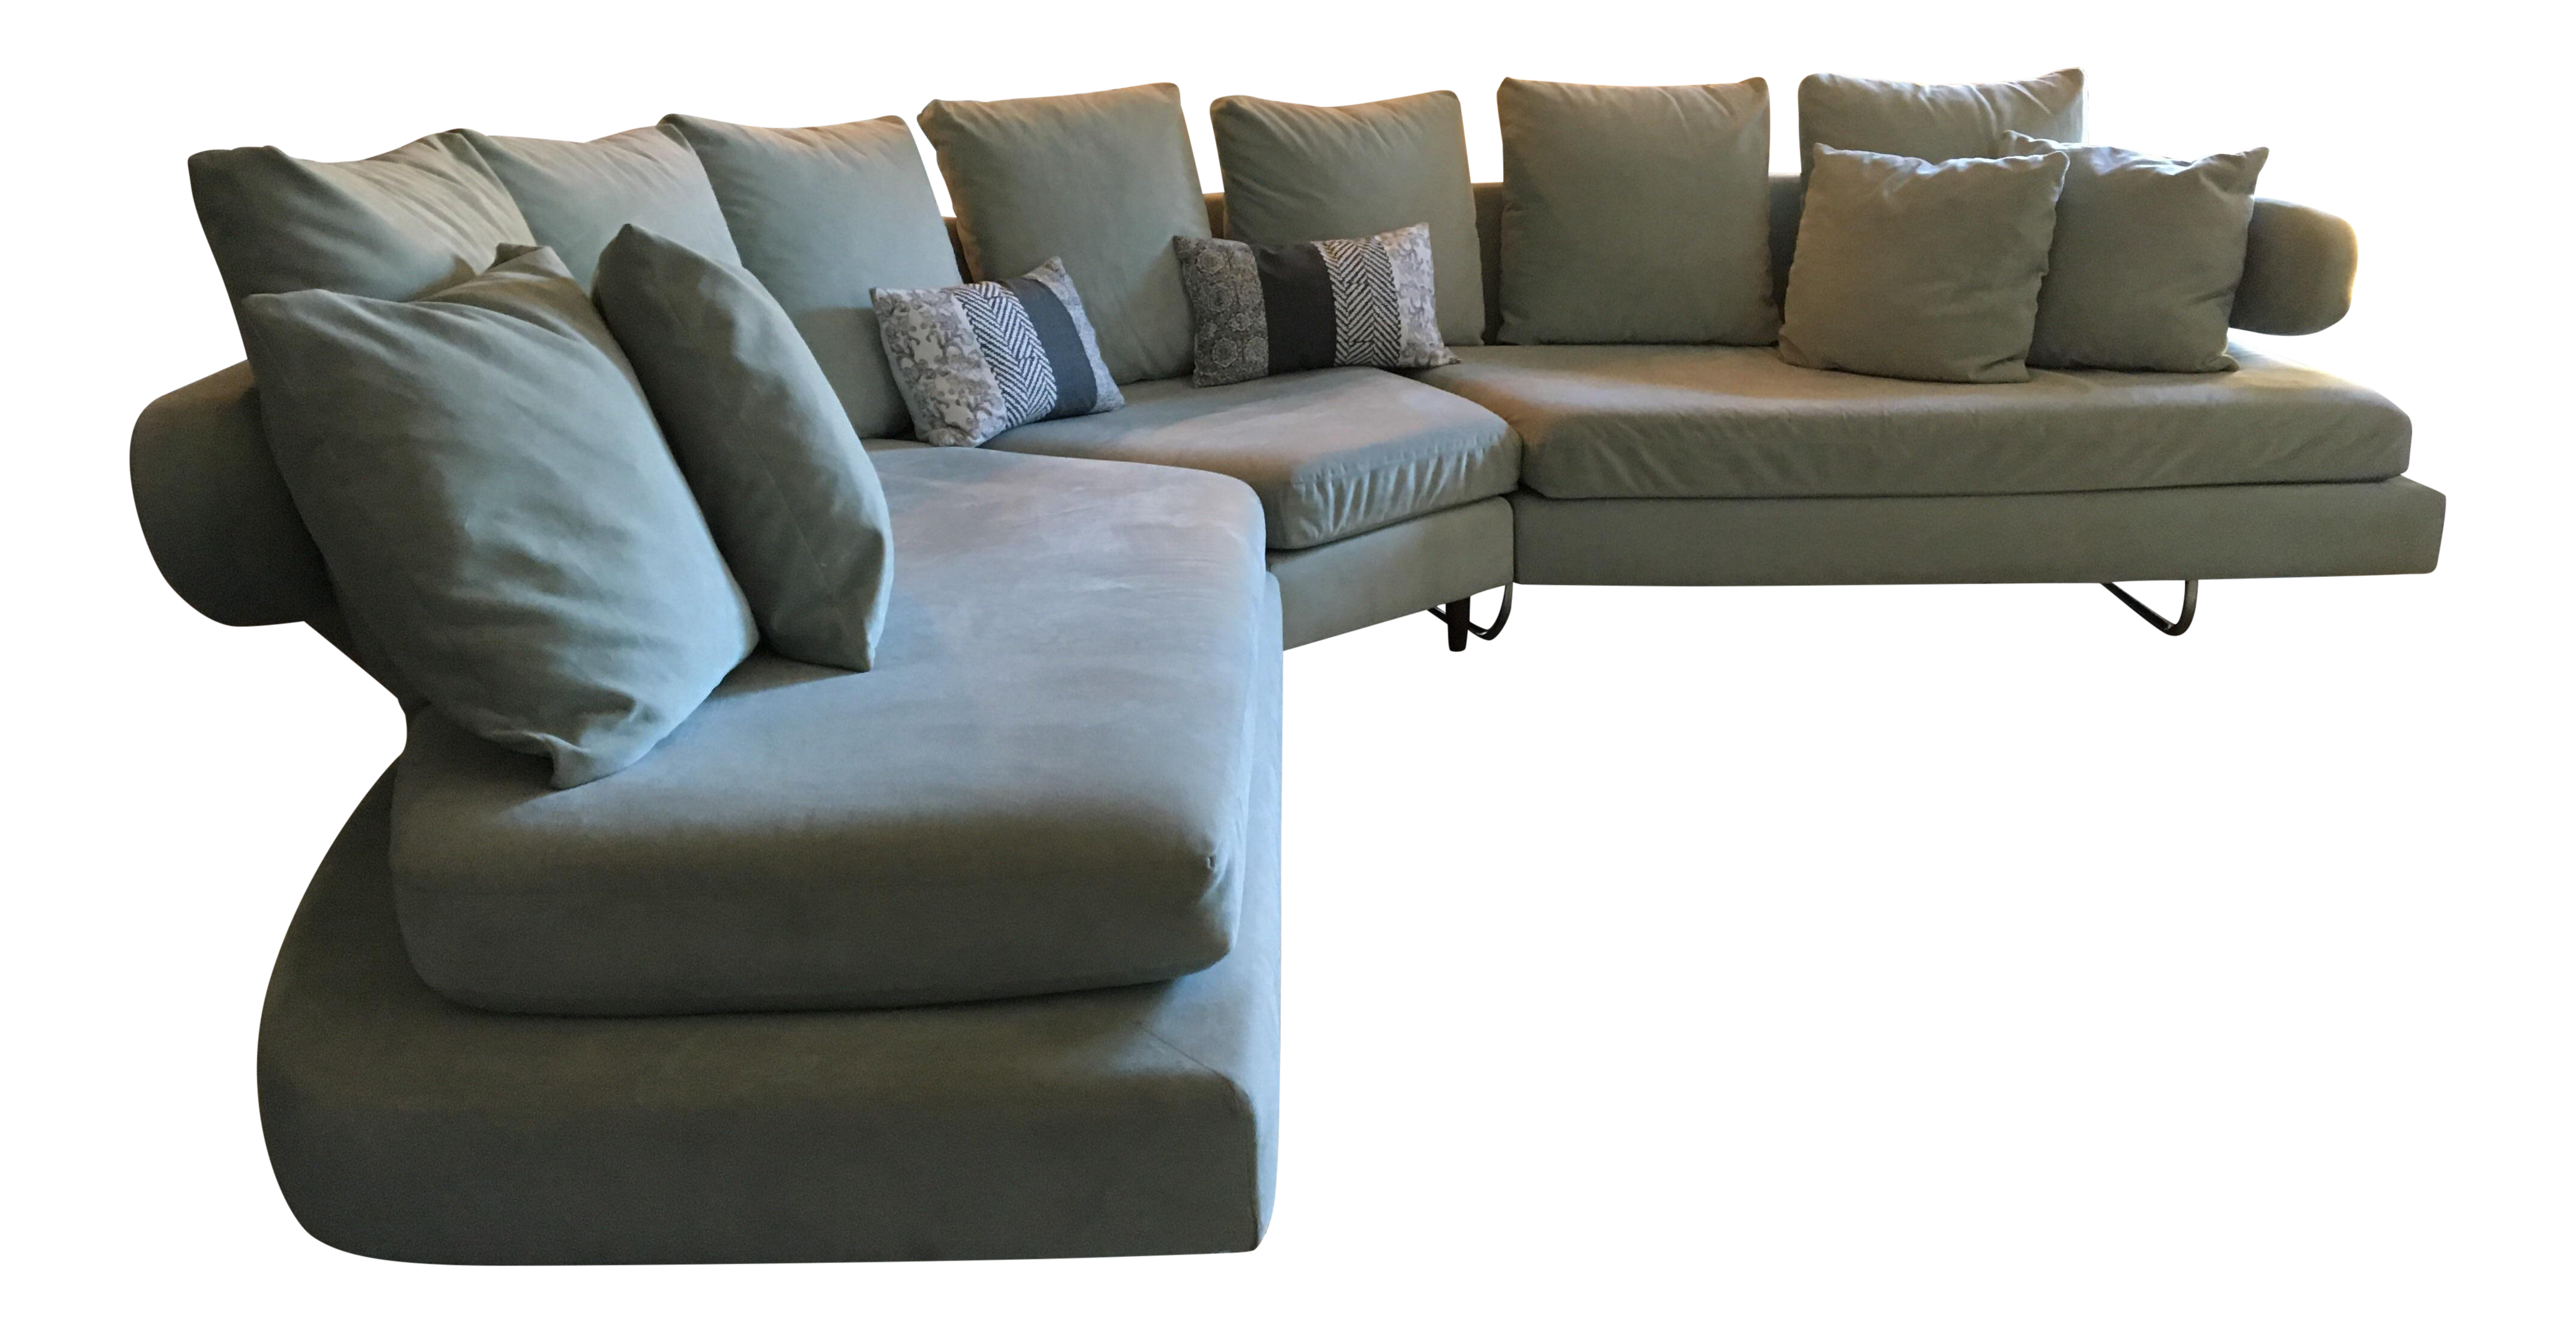 Vintage Mid Century Modern Curved Sectional Couch B&b Italia Style ...